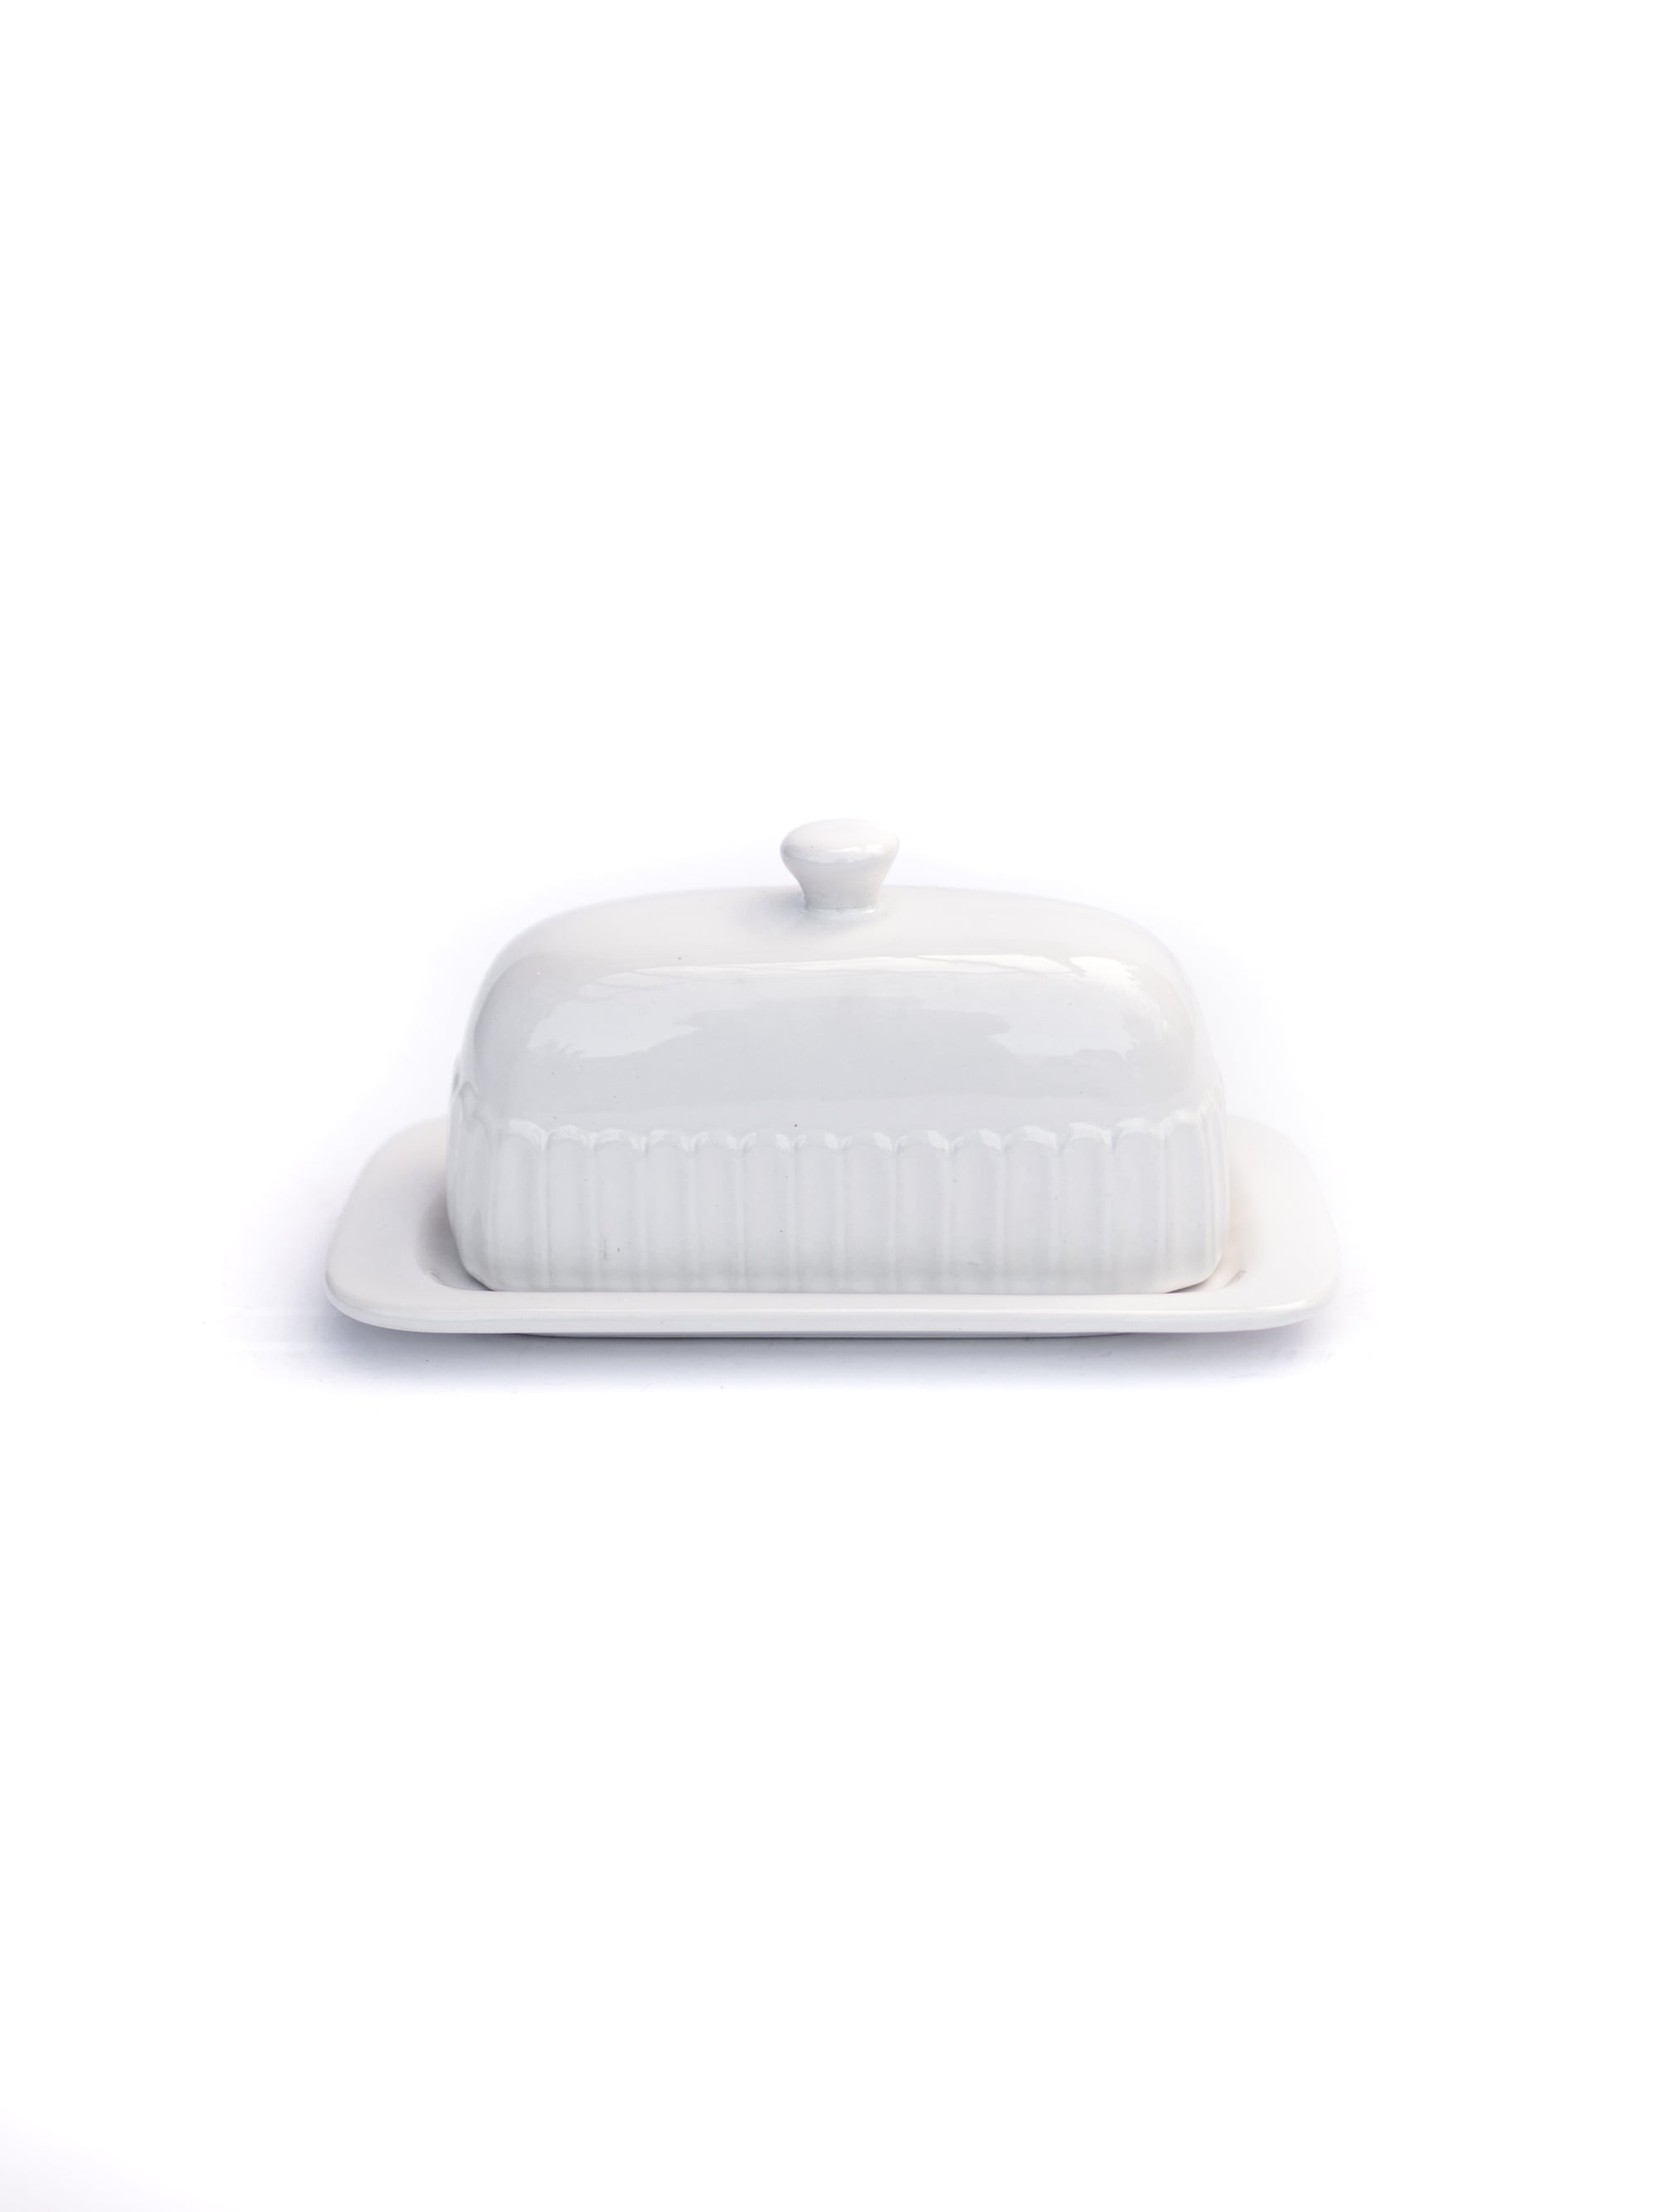 White Textured Butter Dish